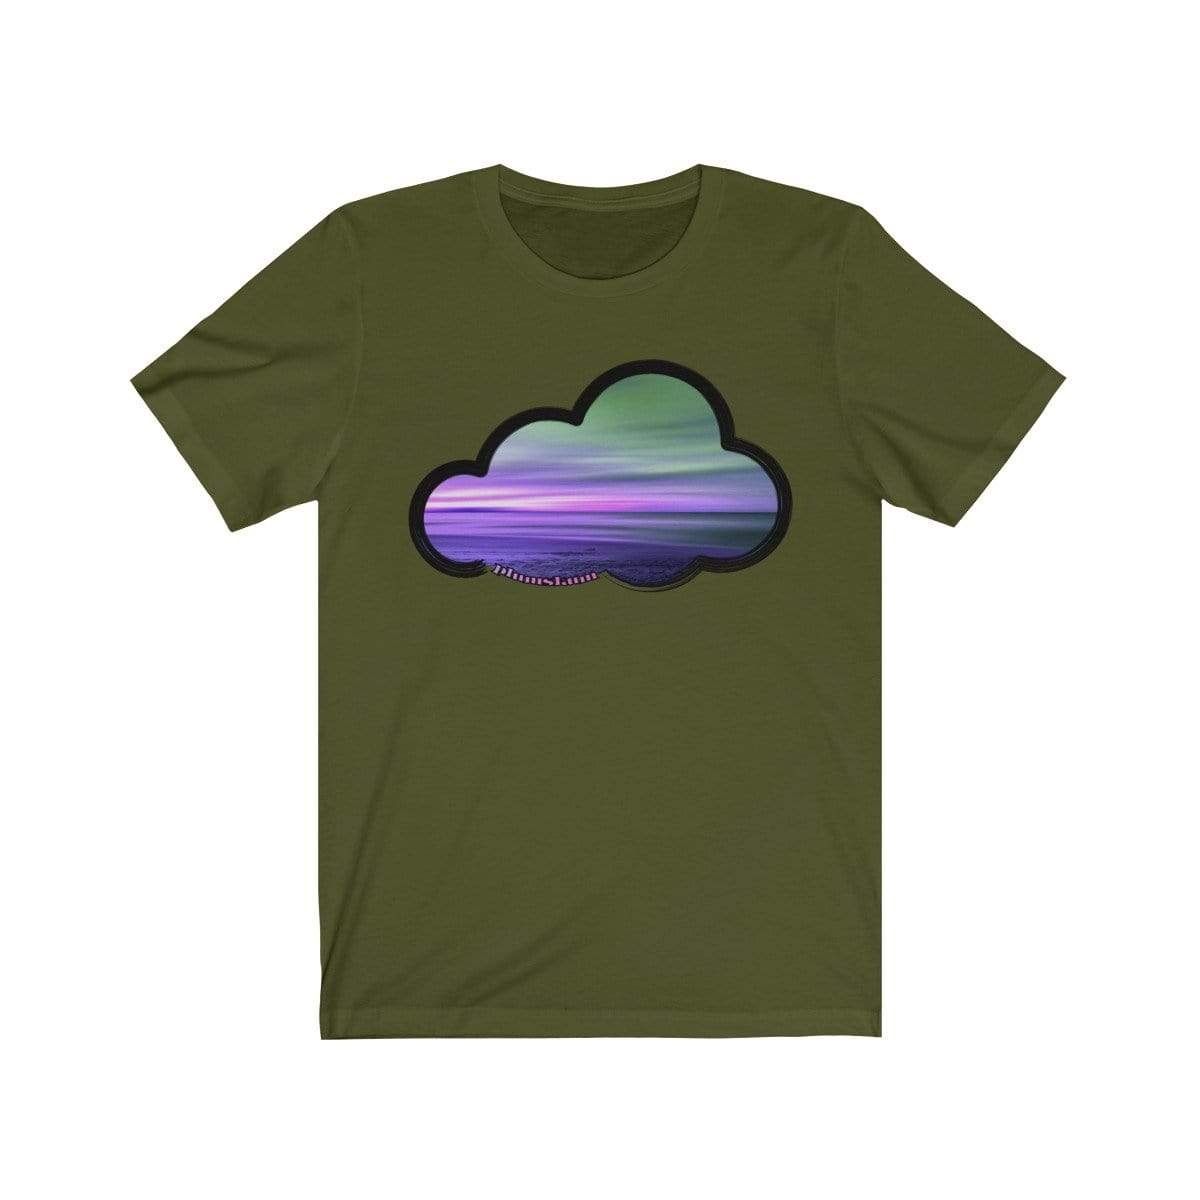 Printify T-Shirt Olive / M Beaches Art Clouds Tee